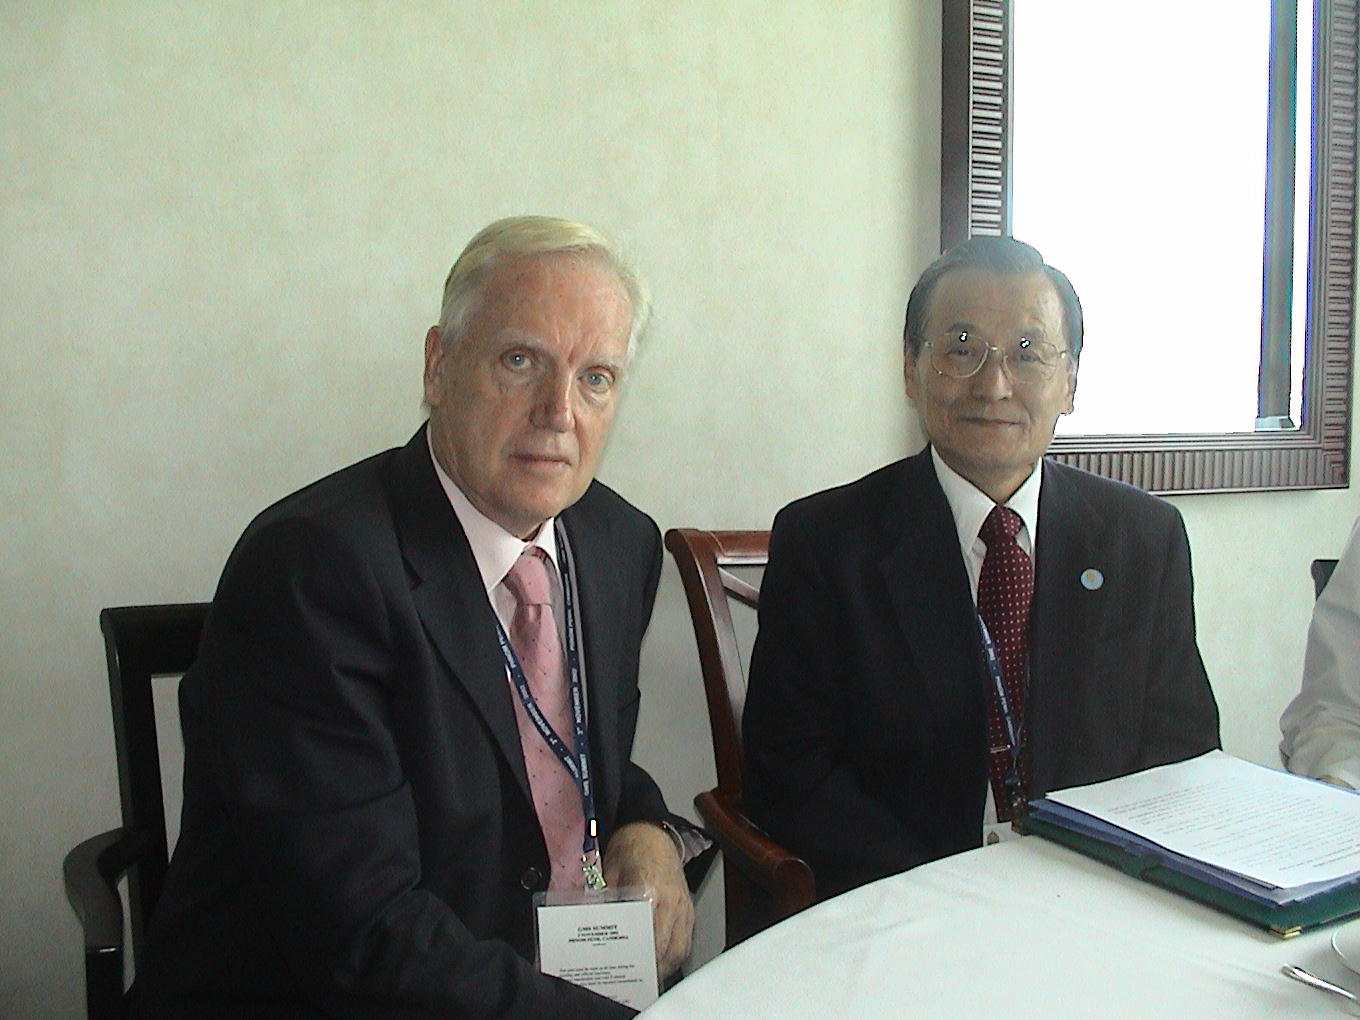 David Husband with Mr. Tadeo Chino, President of the Asian Development Bank